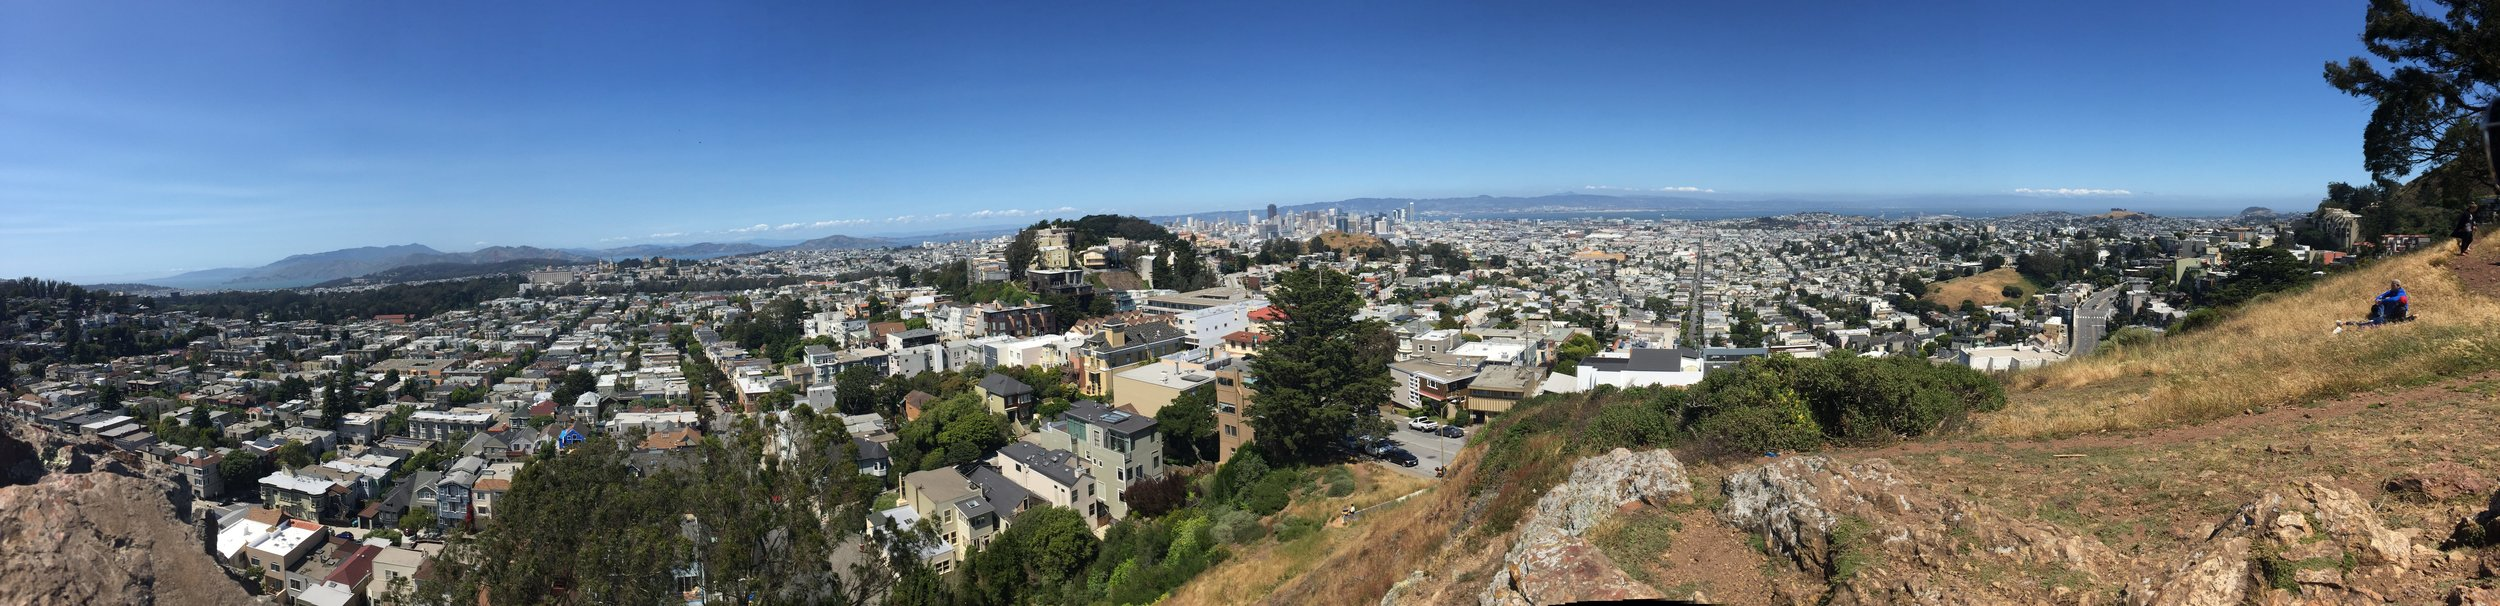 Panoramic View of Tank Hill in San Francisco